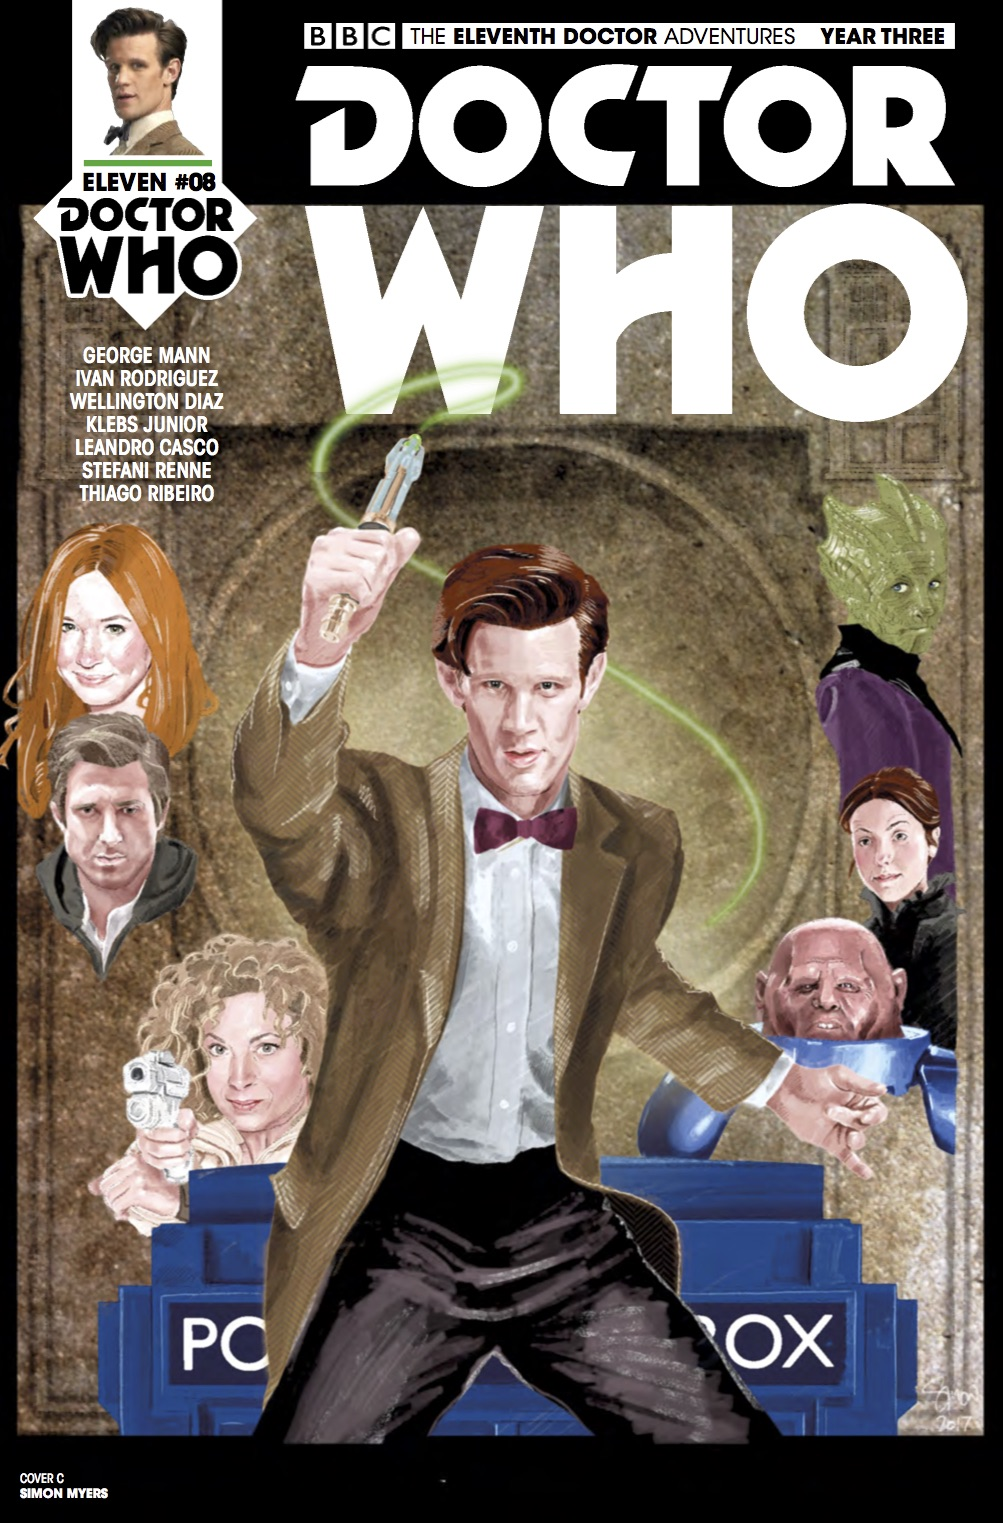 Doctor Who: Eleventh Doctor Year Three #8 Cover C (Credit: Titan / Simon Myers )